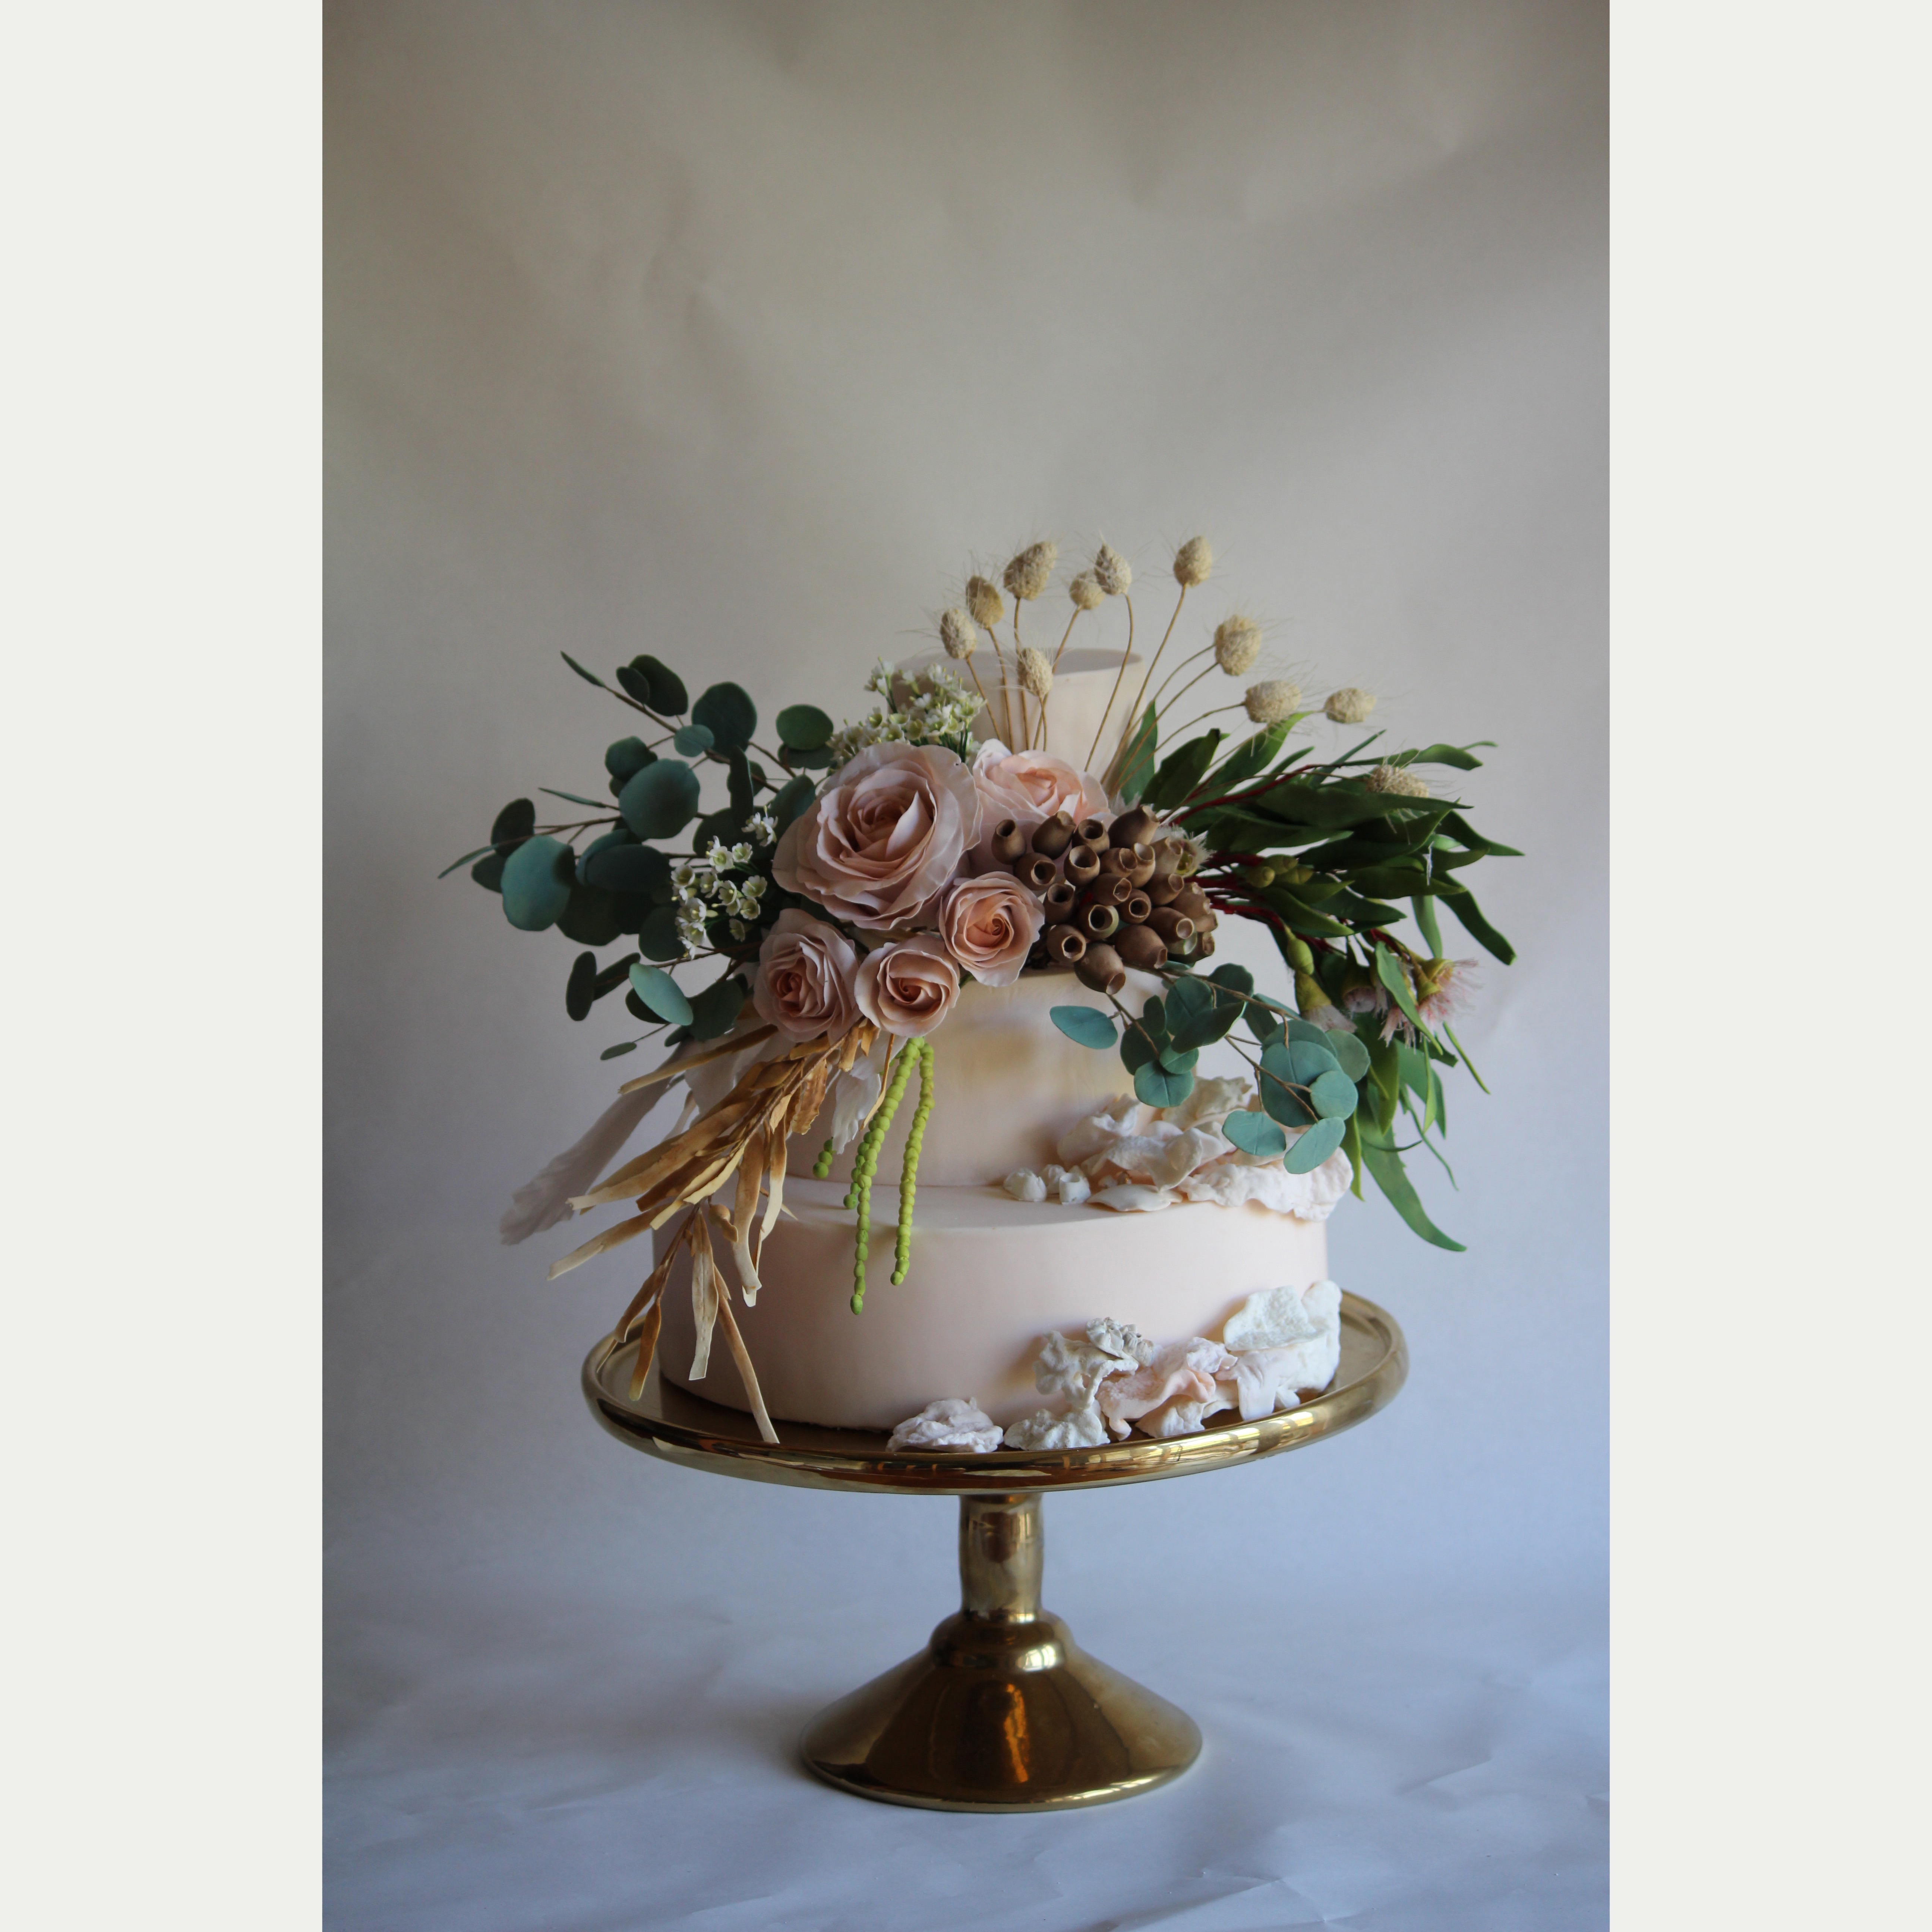 Victorian cake with blush sugar roses and eucalyptus